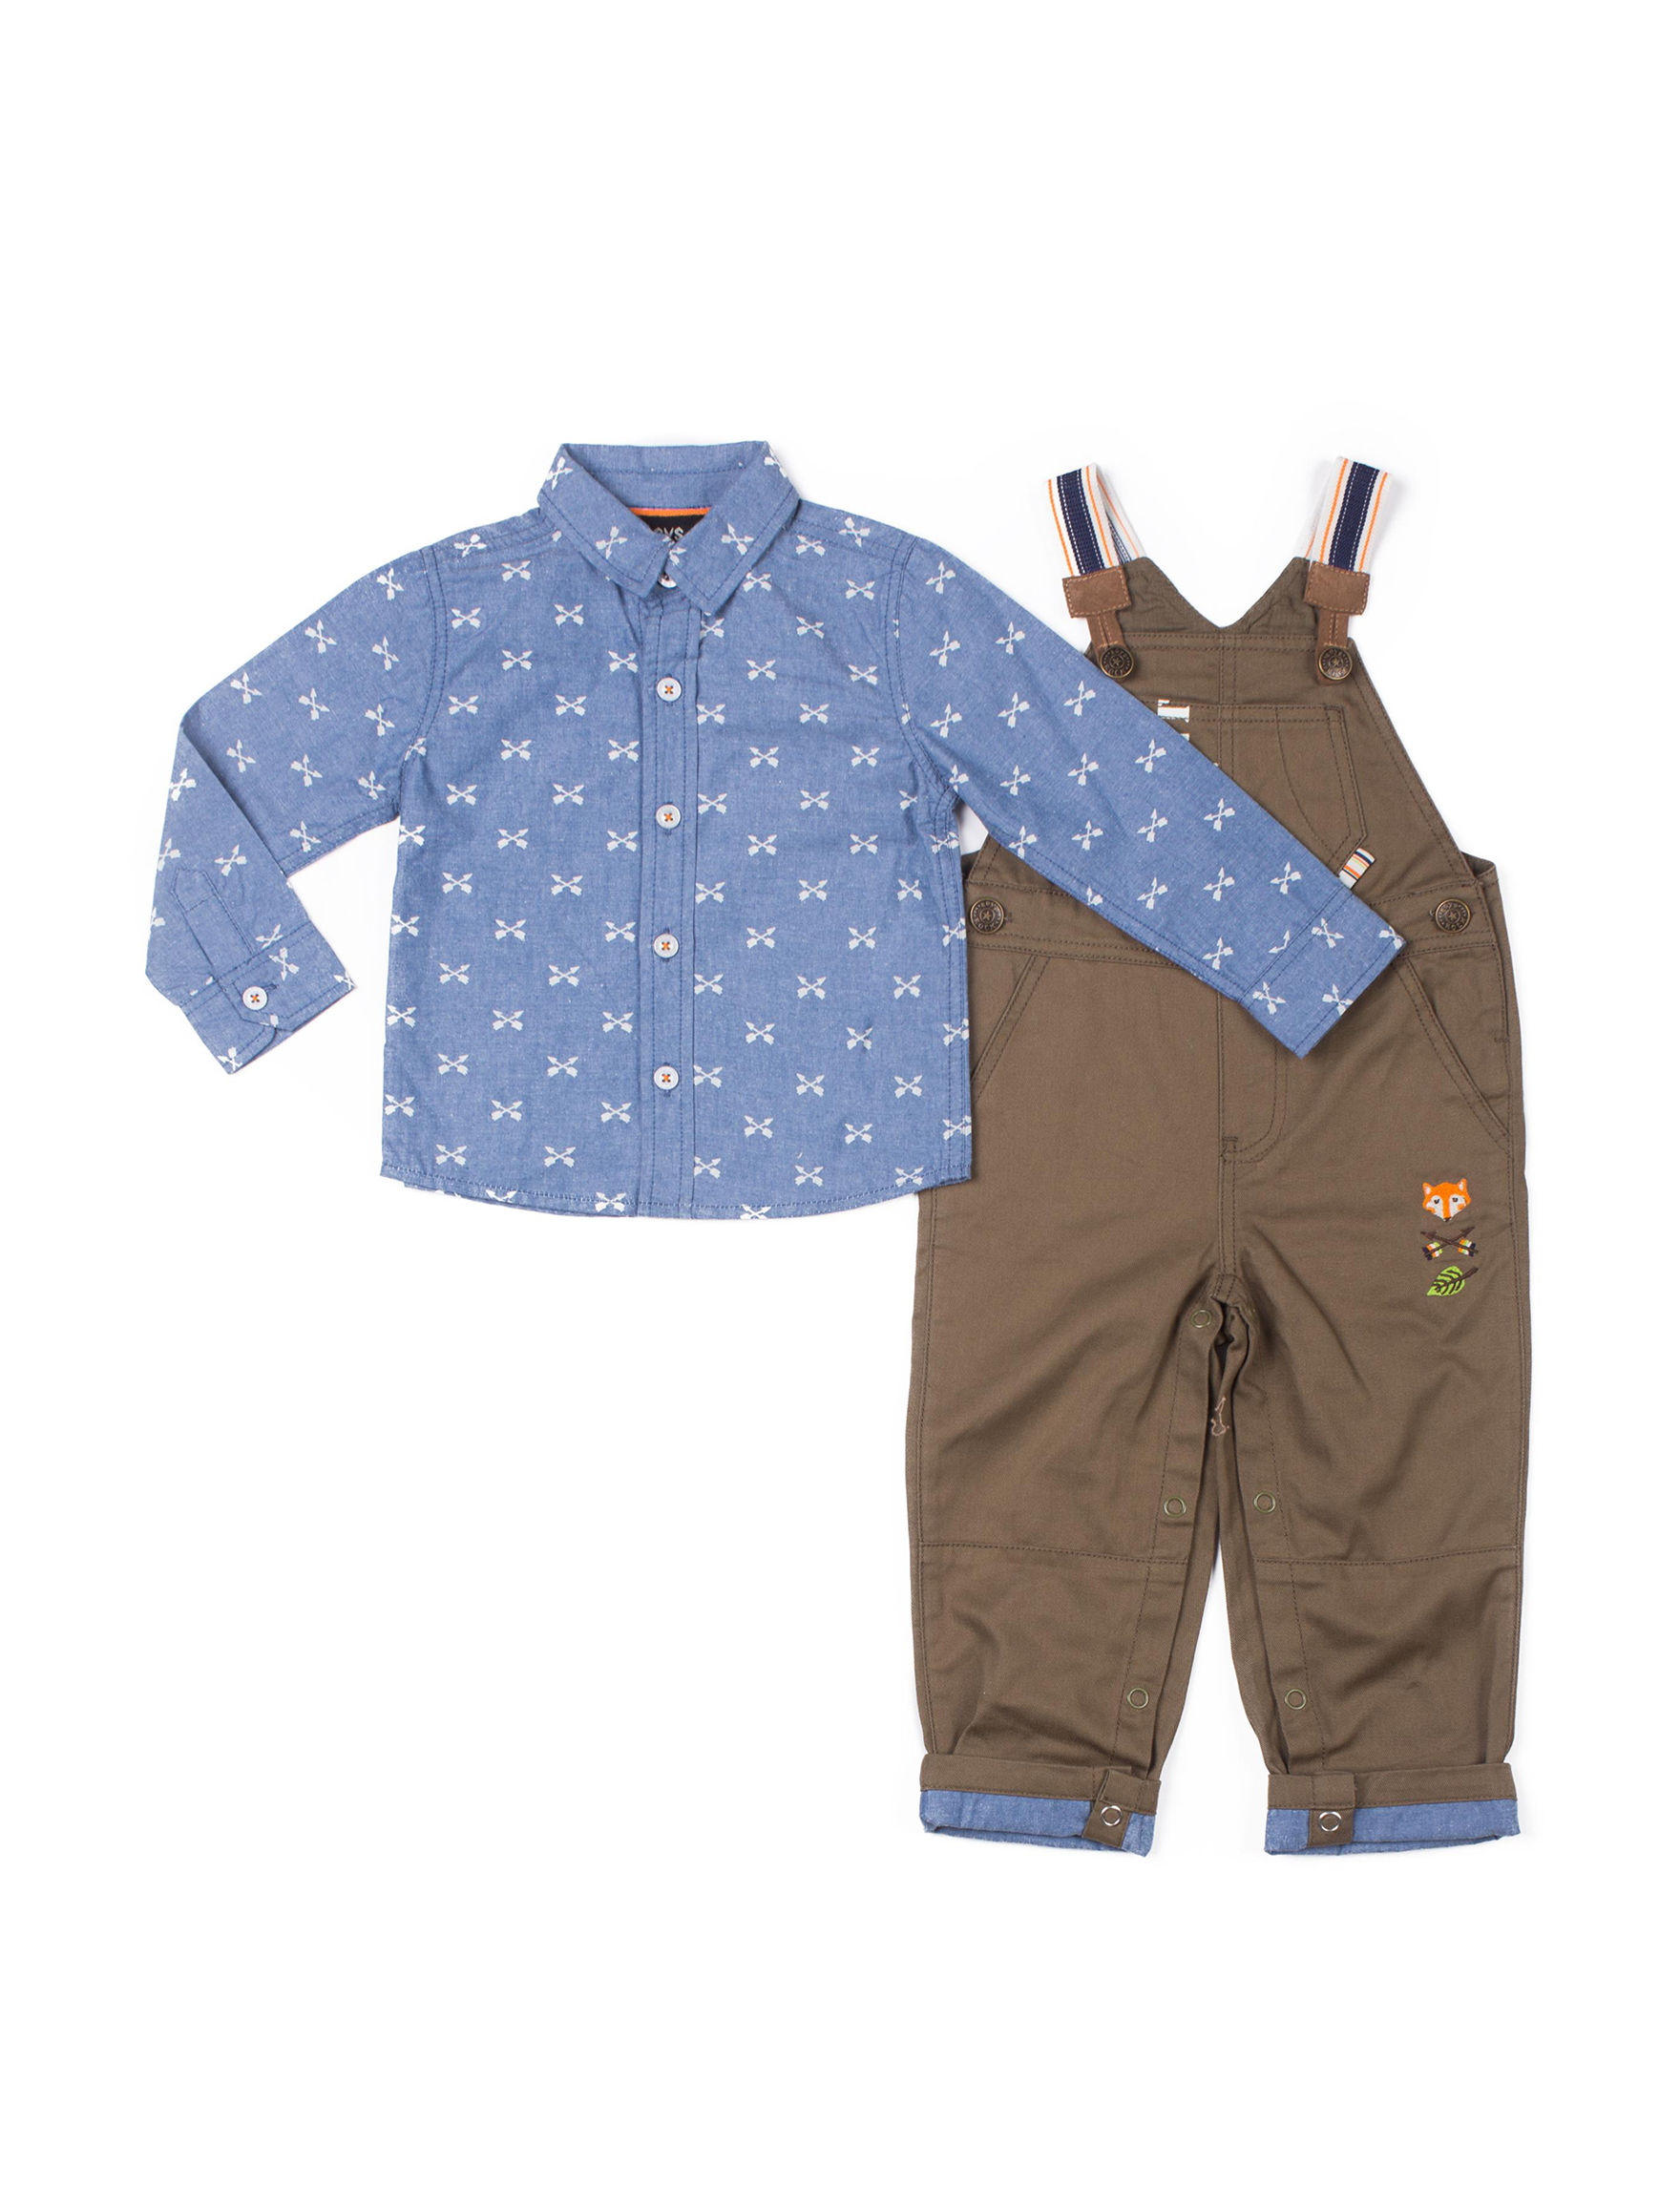 Boys Rock Chambray / Olive